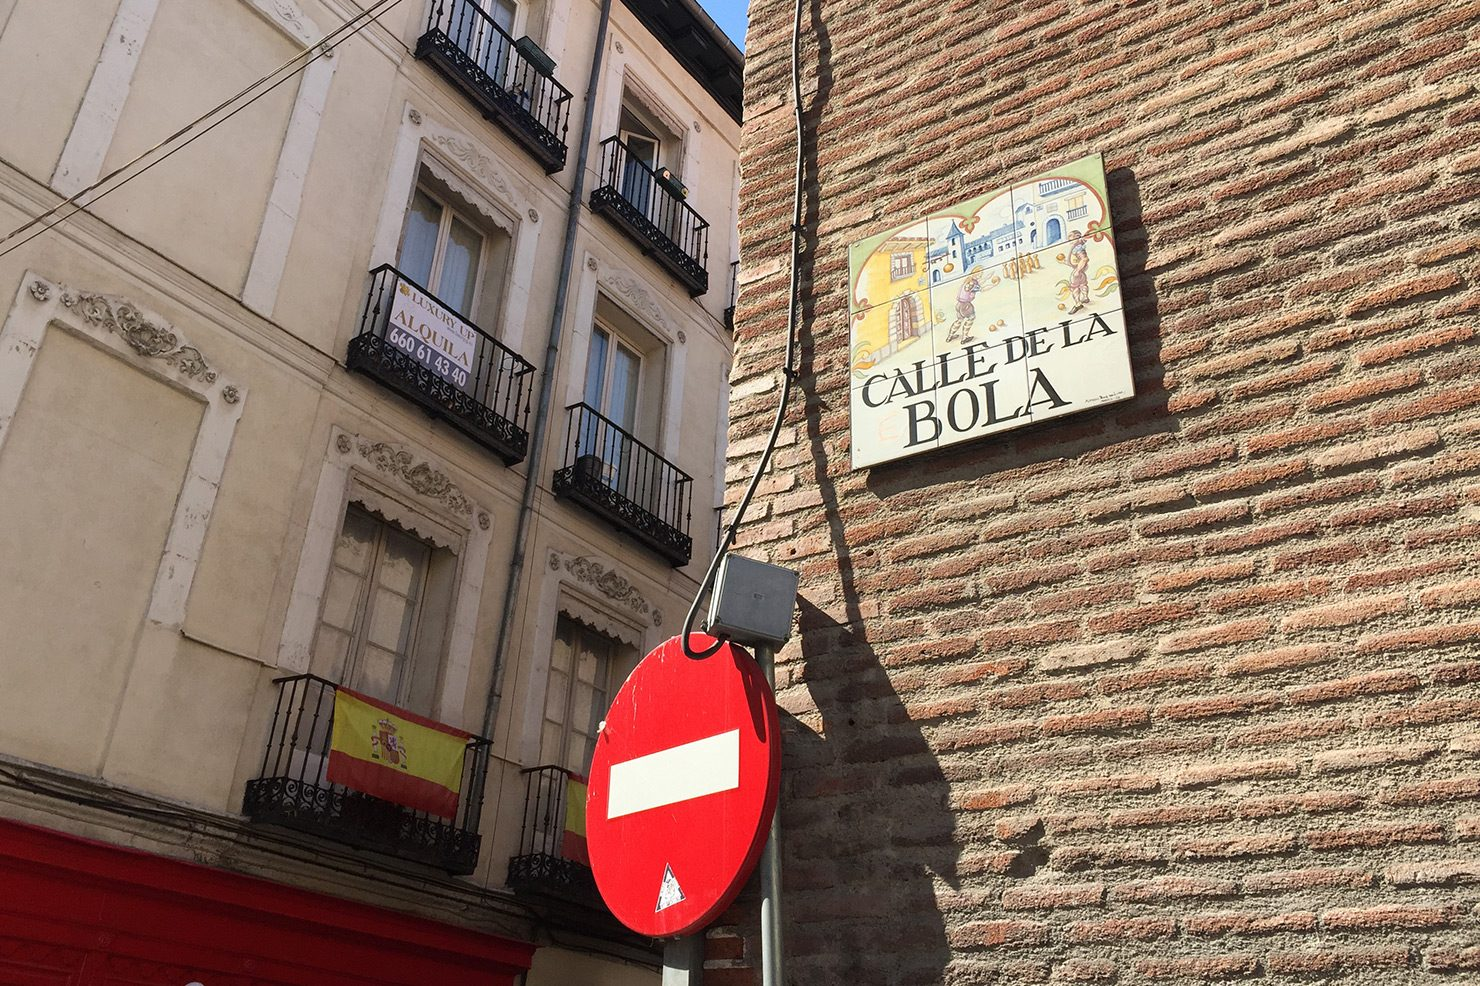 Tiled street sign in central Madrid, showing Calle de la Bola.